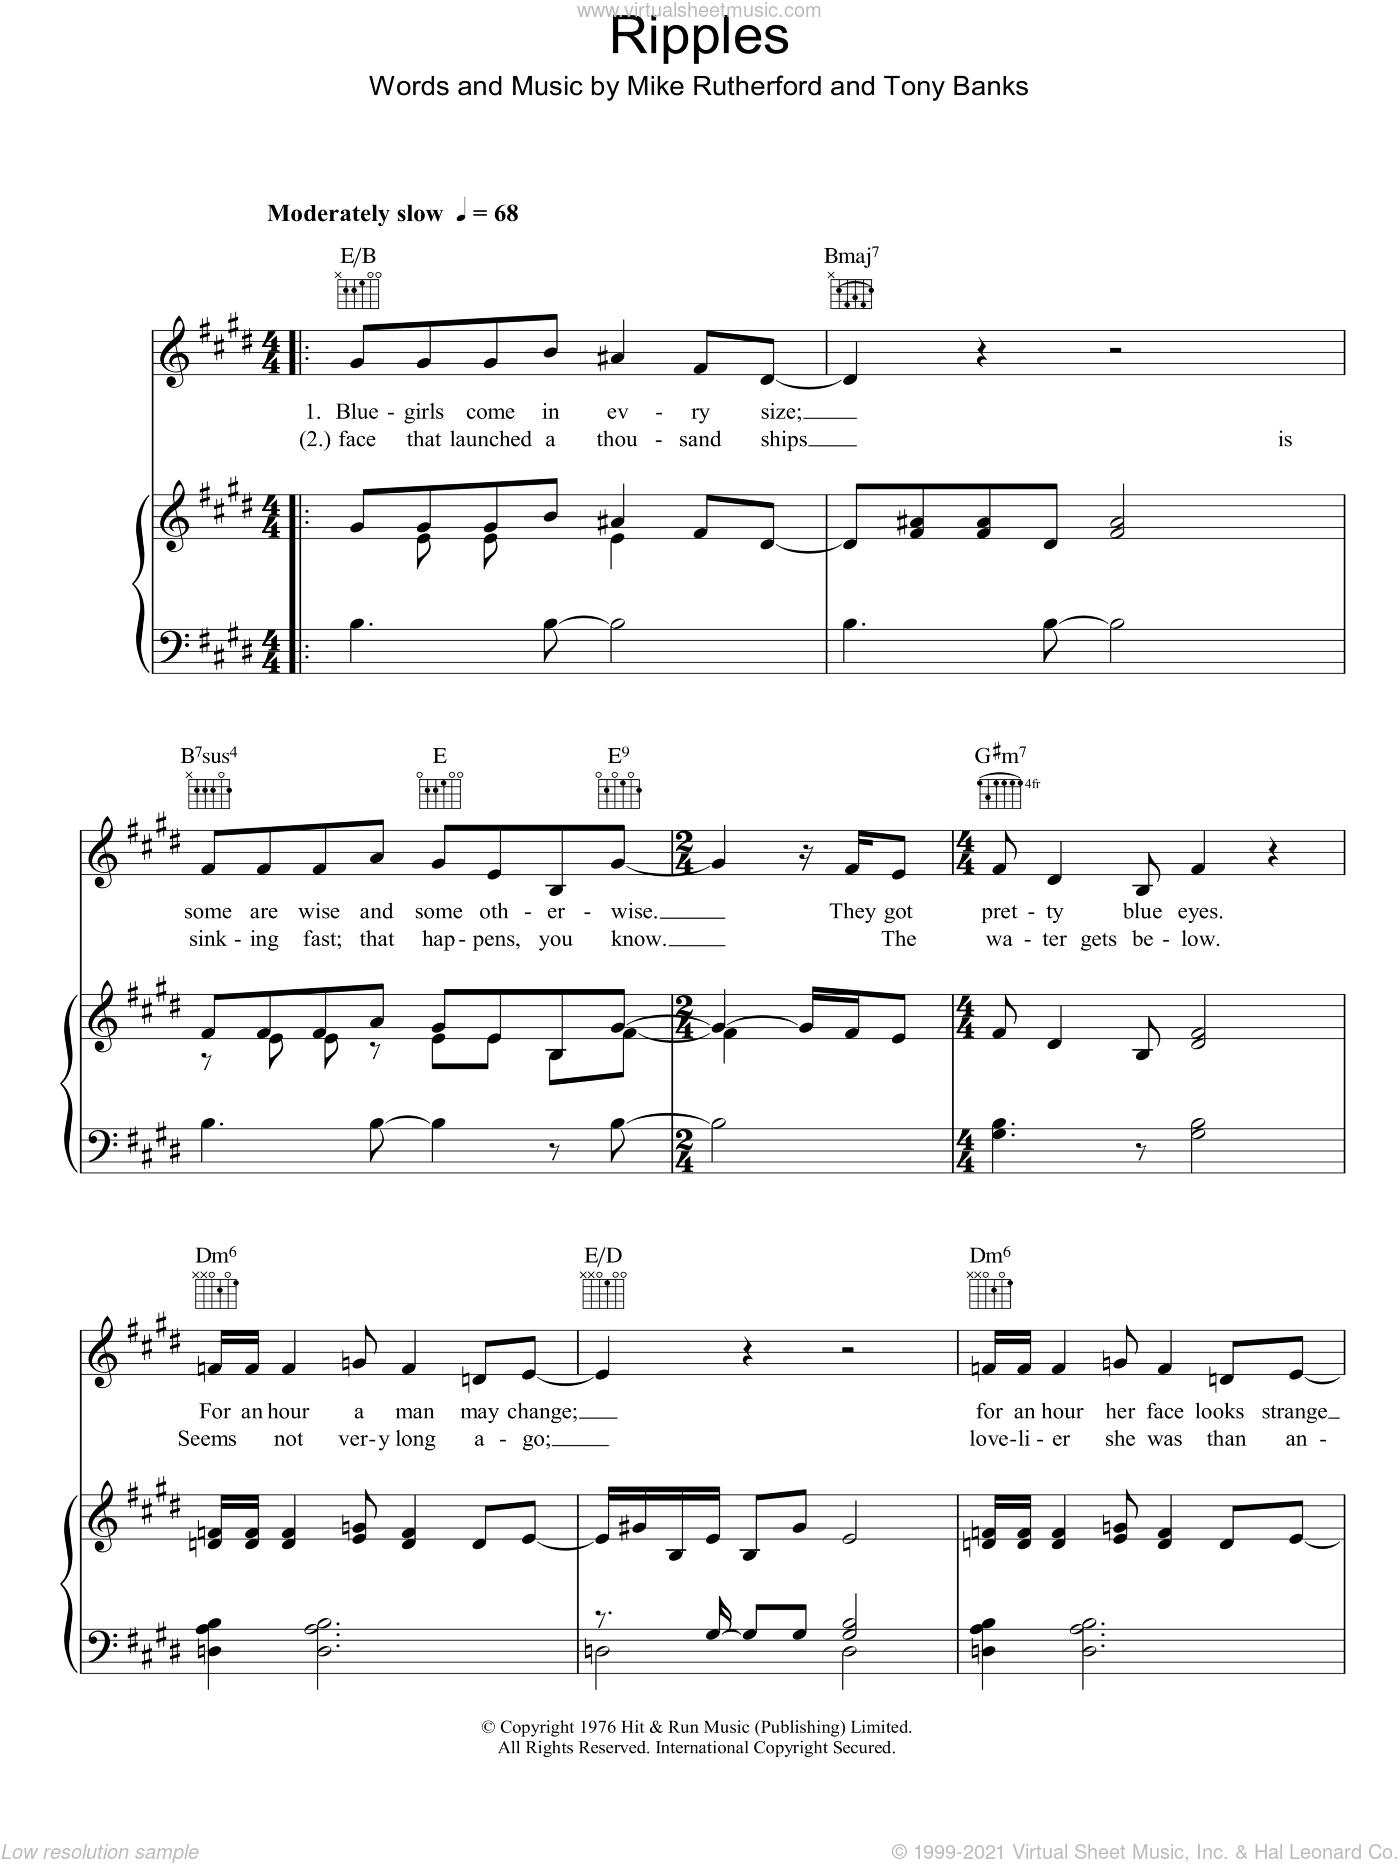 Ripples sheet music for voice, piano or guitar by Anthony Banks